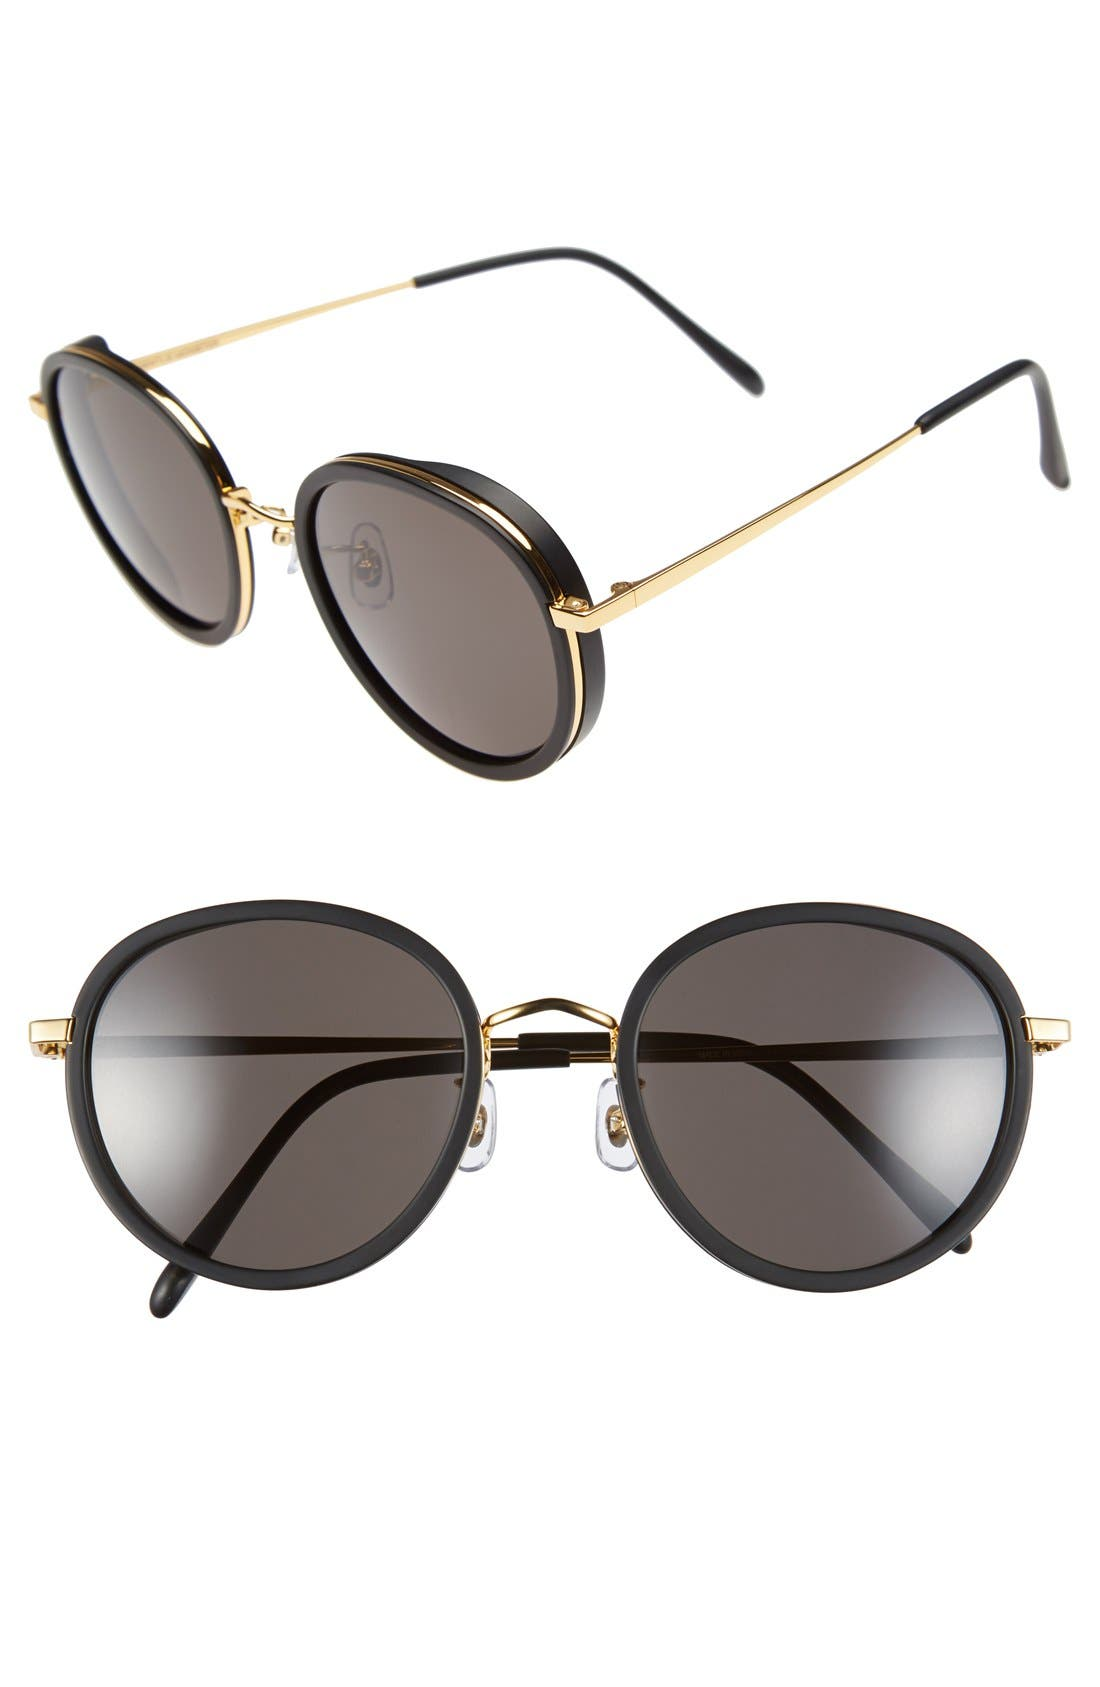 53mm Round Retro Sunglasses,                             Main thumbnail 1, color,                             001